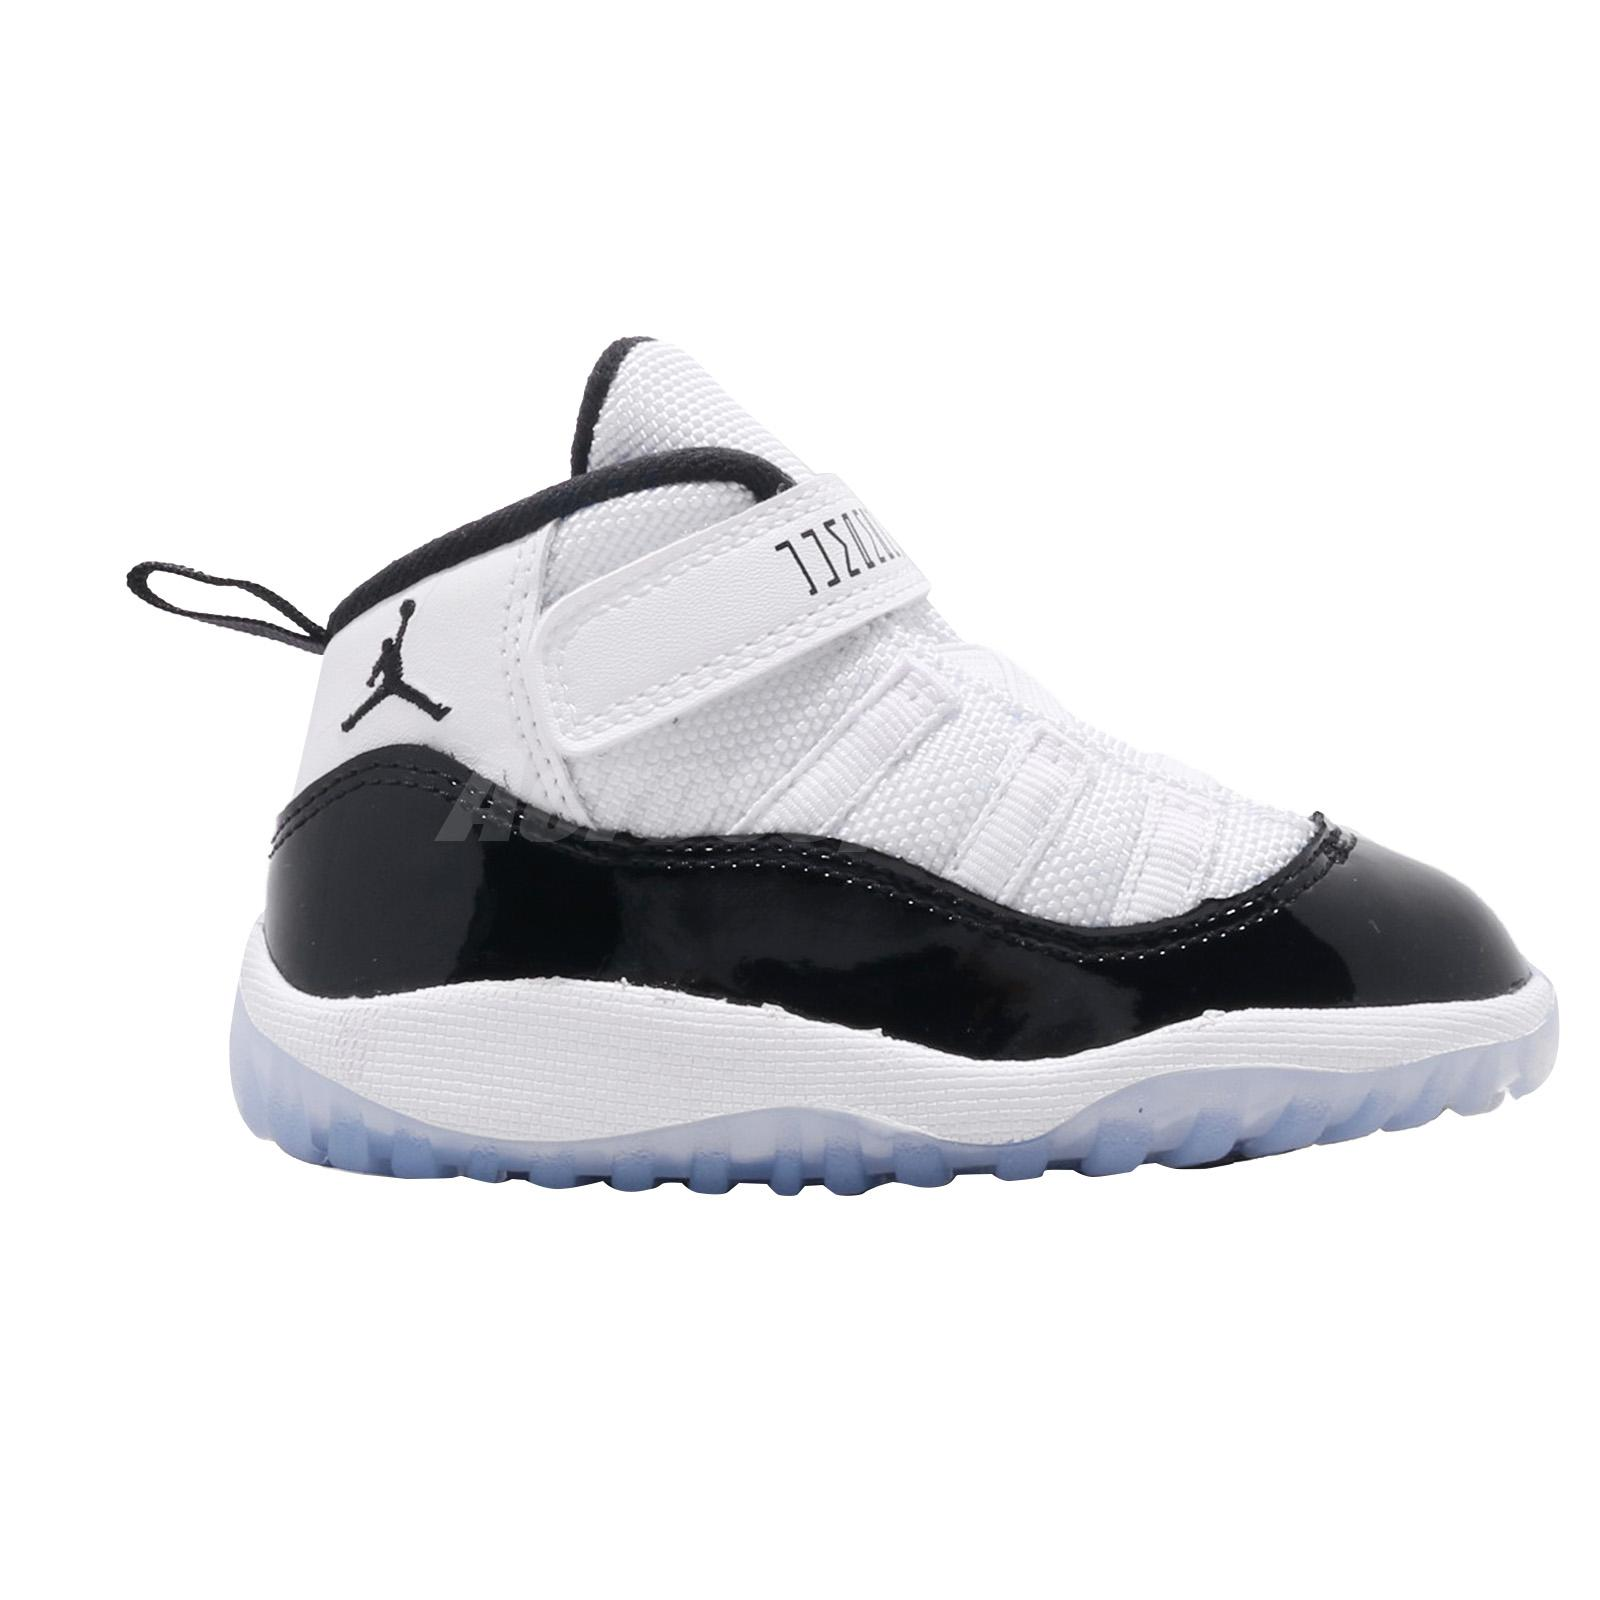 8912eb1d4ae Nike Jordan 11 Retro TD Concord White Black Air Toddler Infant Shoes ...